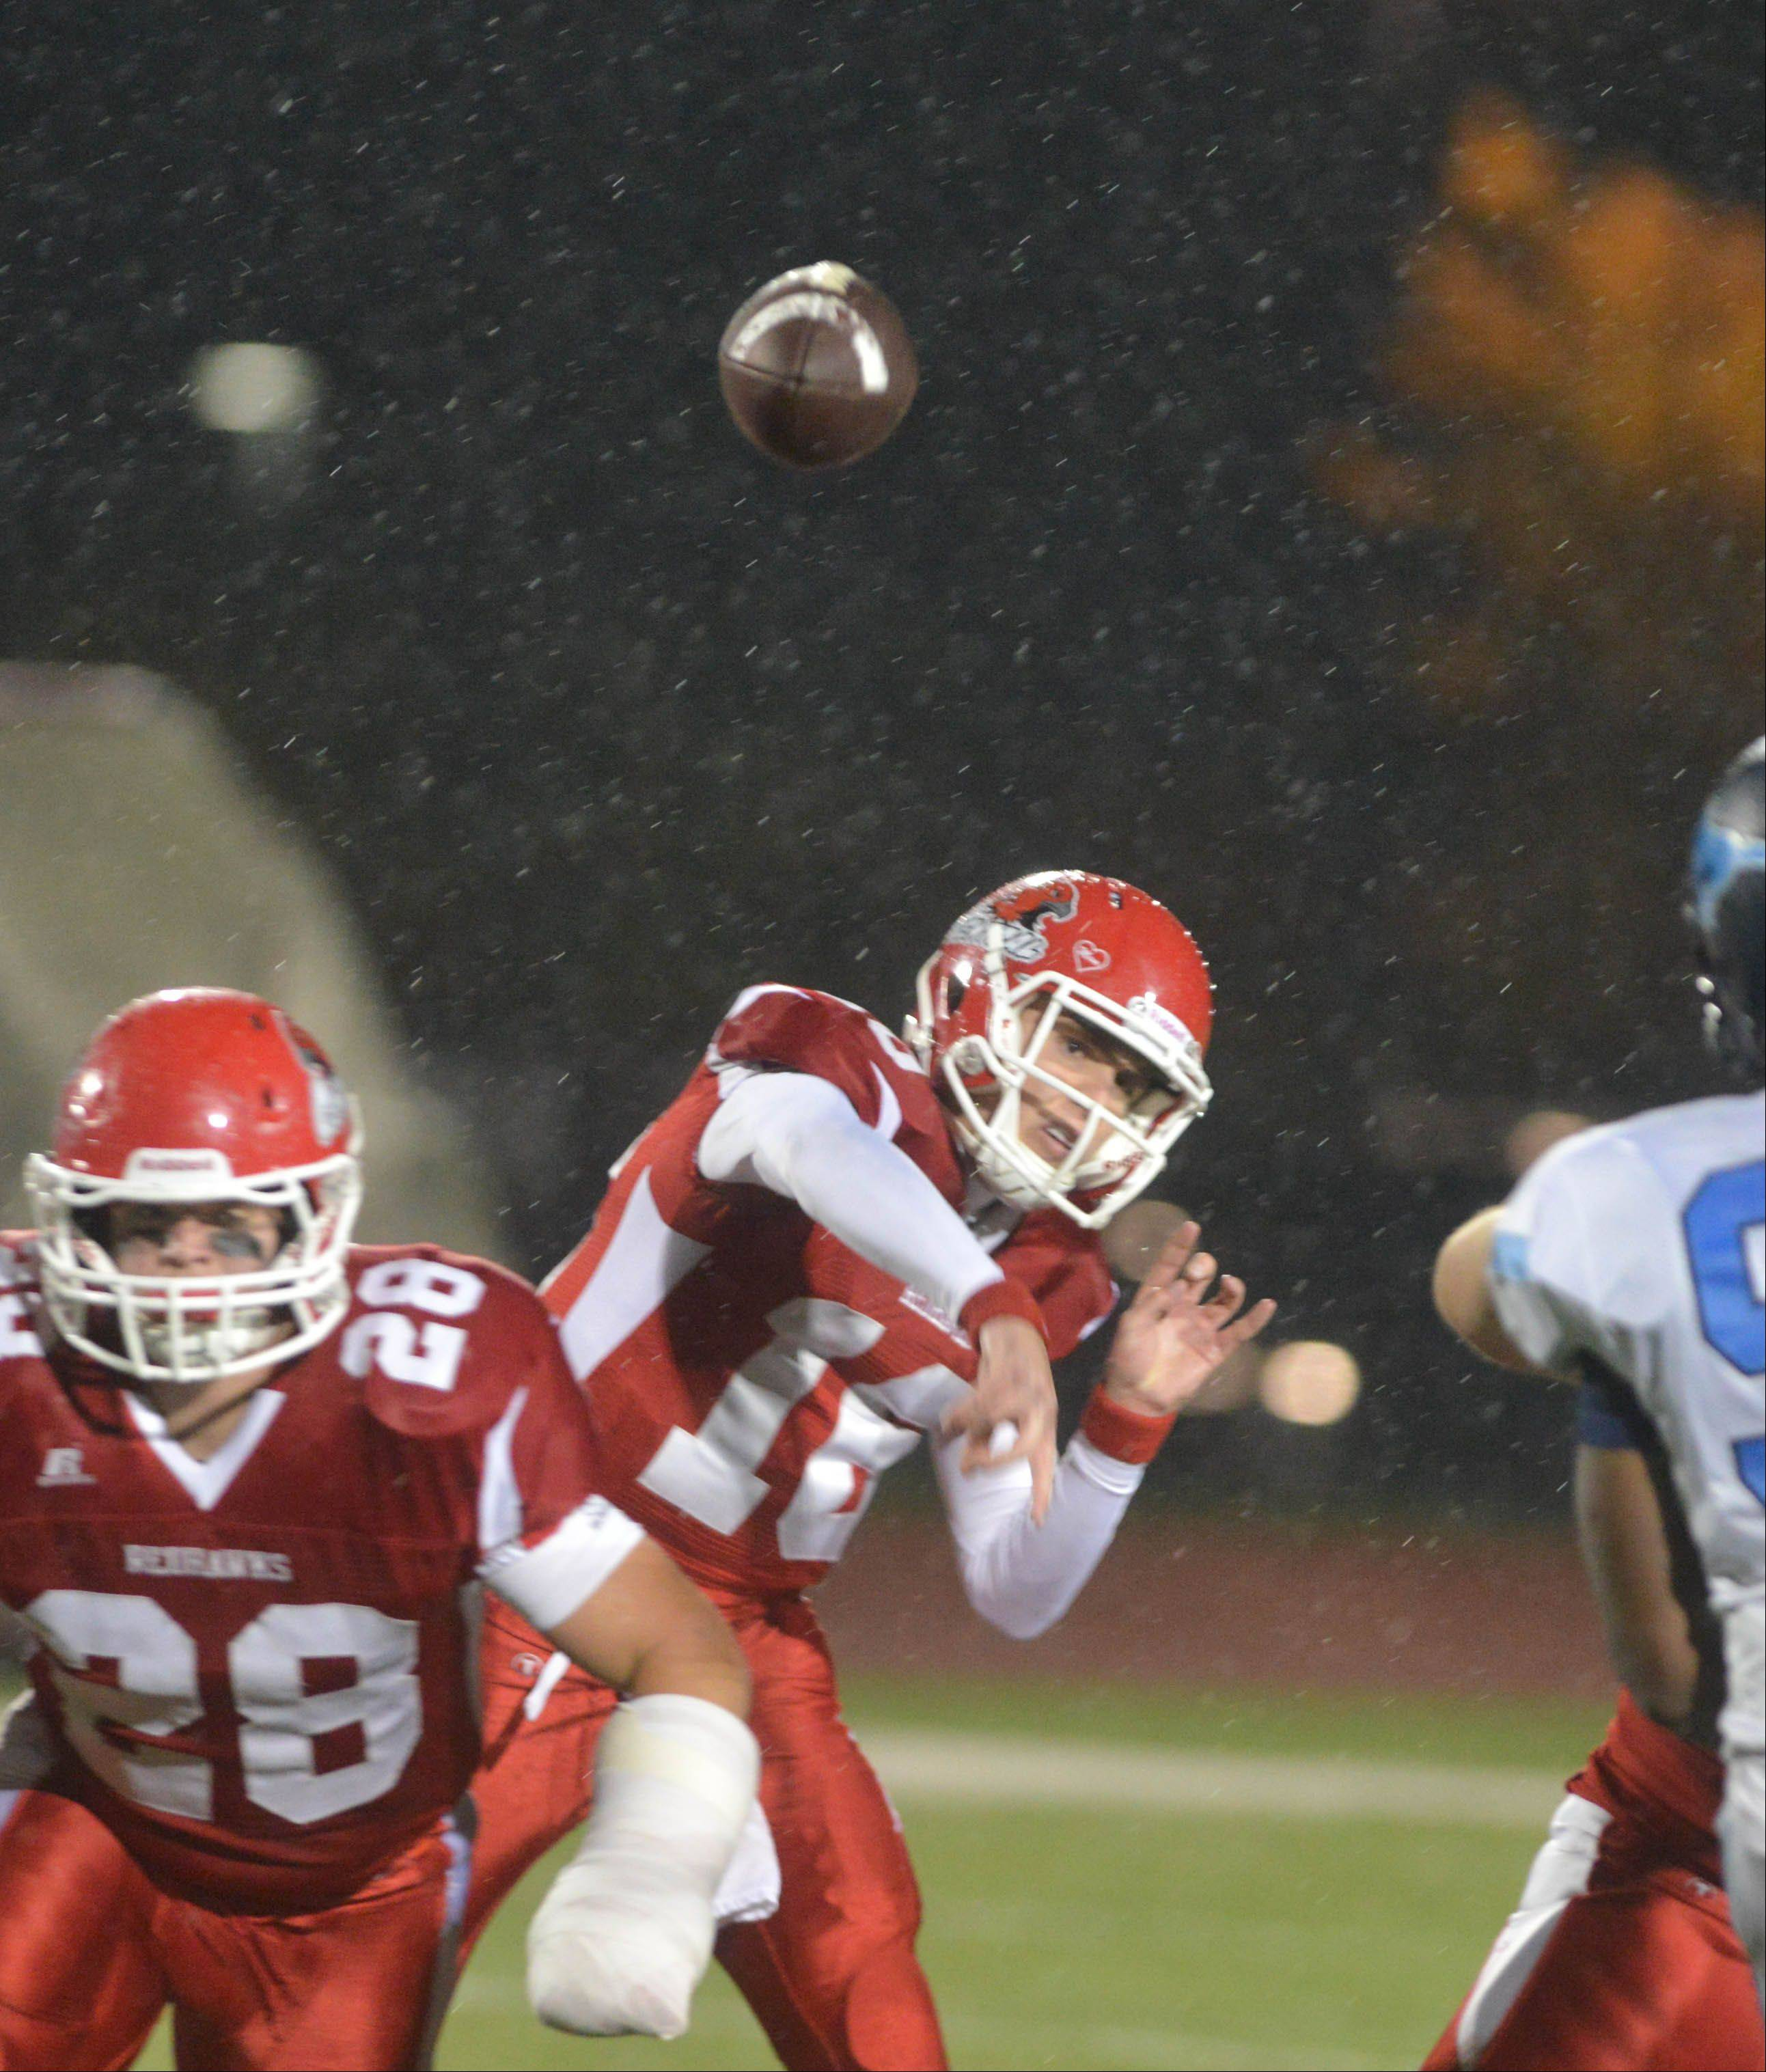 Jake Kolbe of Naperville Central throws a pass against Downers Grove South Friday night in Naperville.